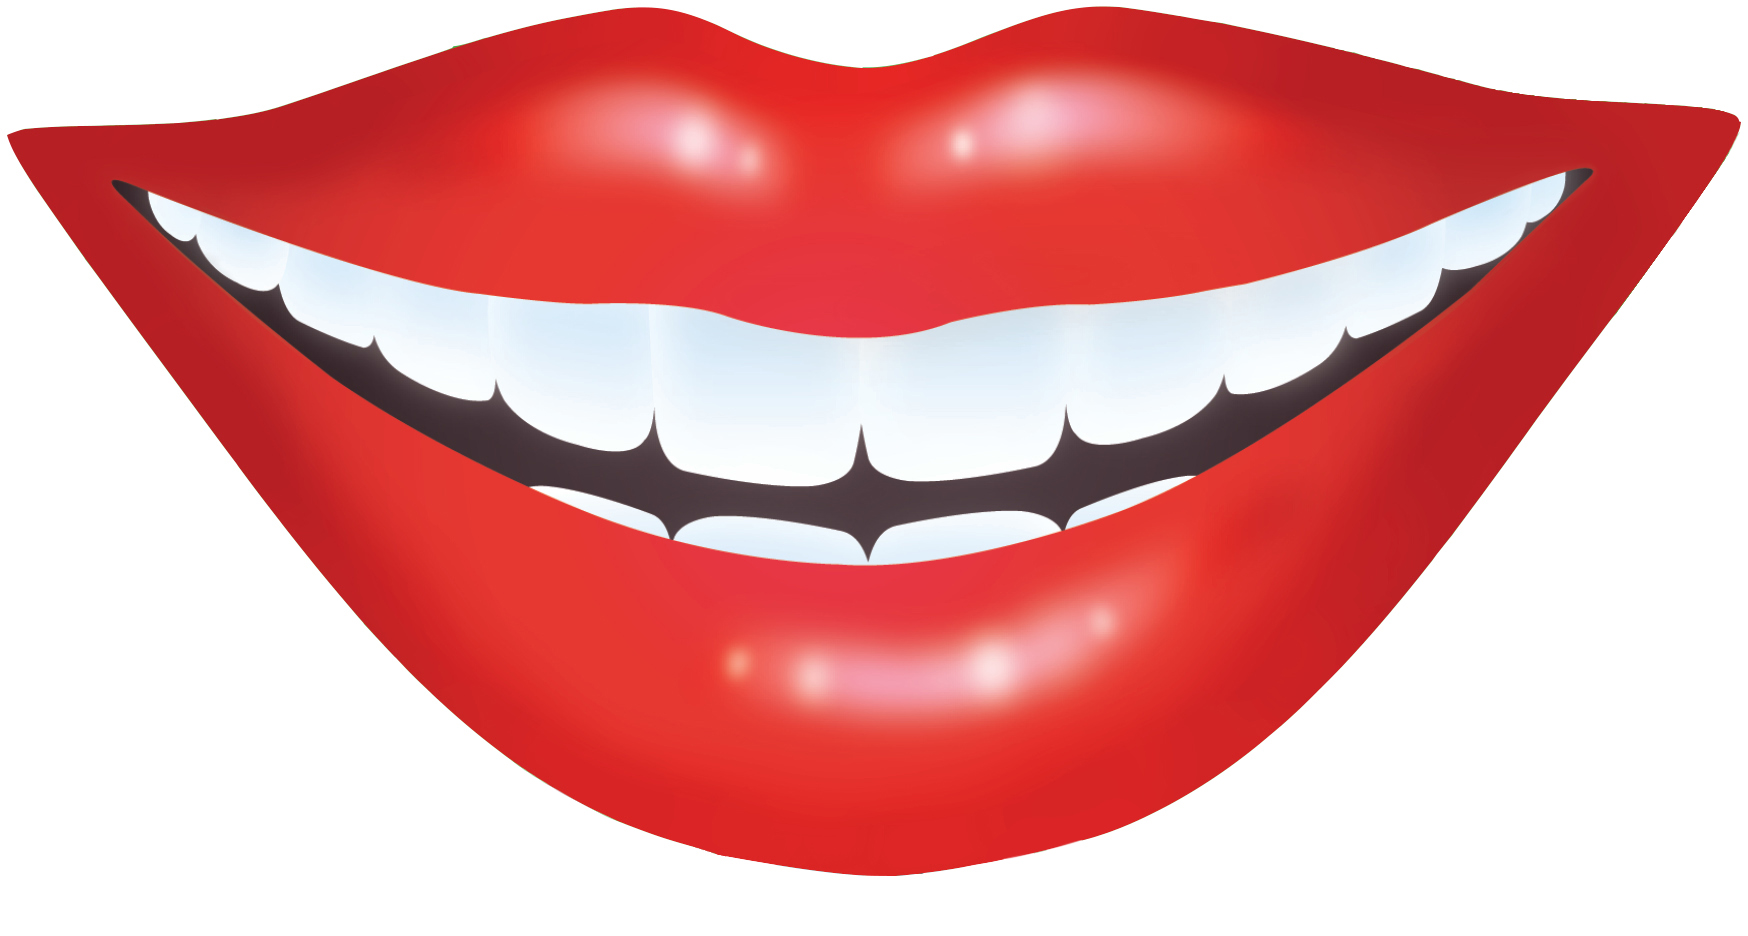 Free Cartoon Mouth Clipart, Download Free Clip Art, Free.